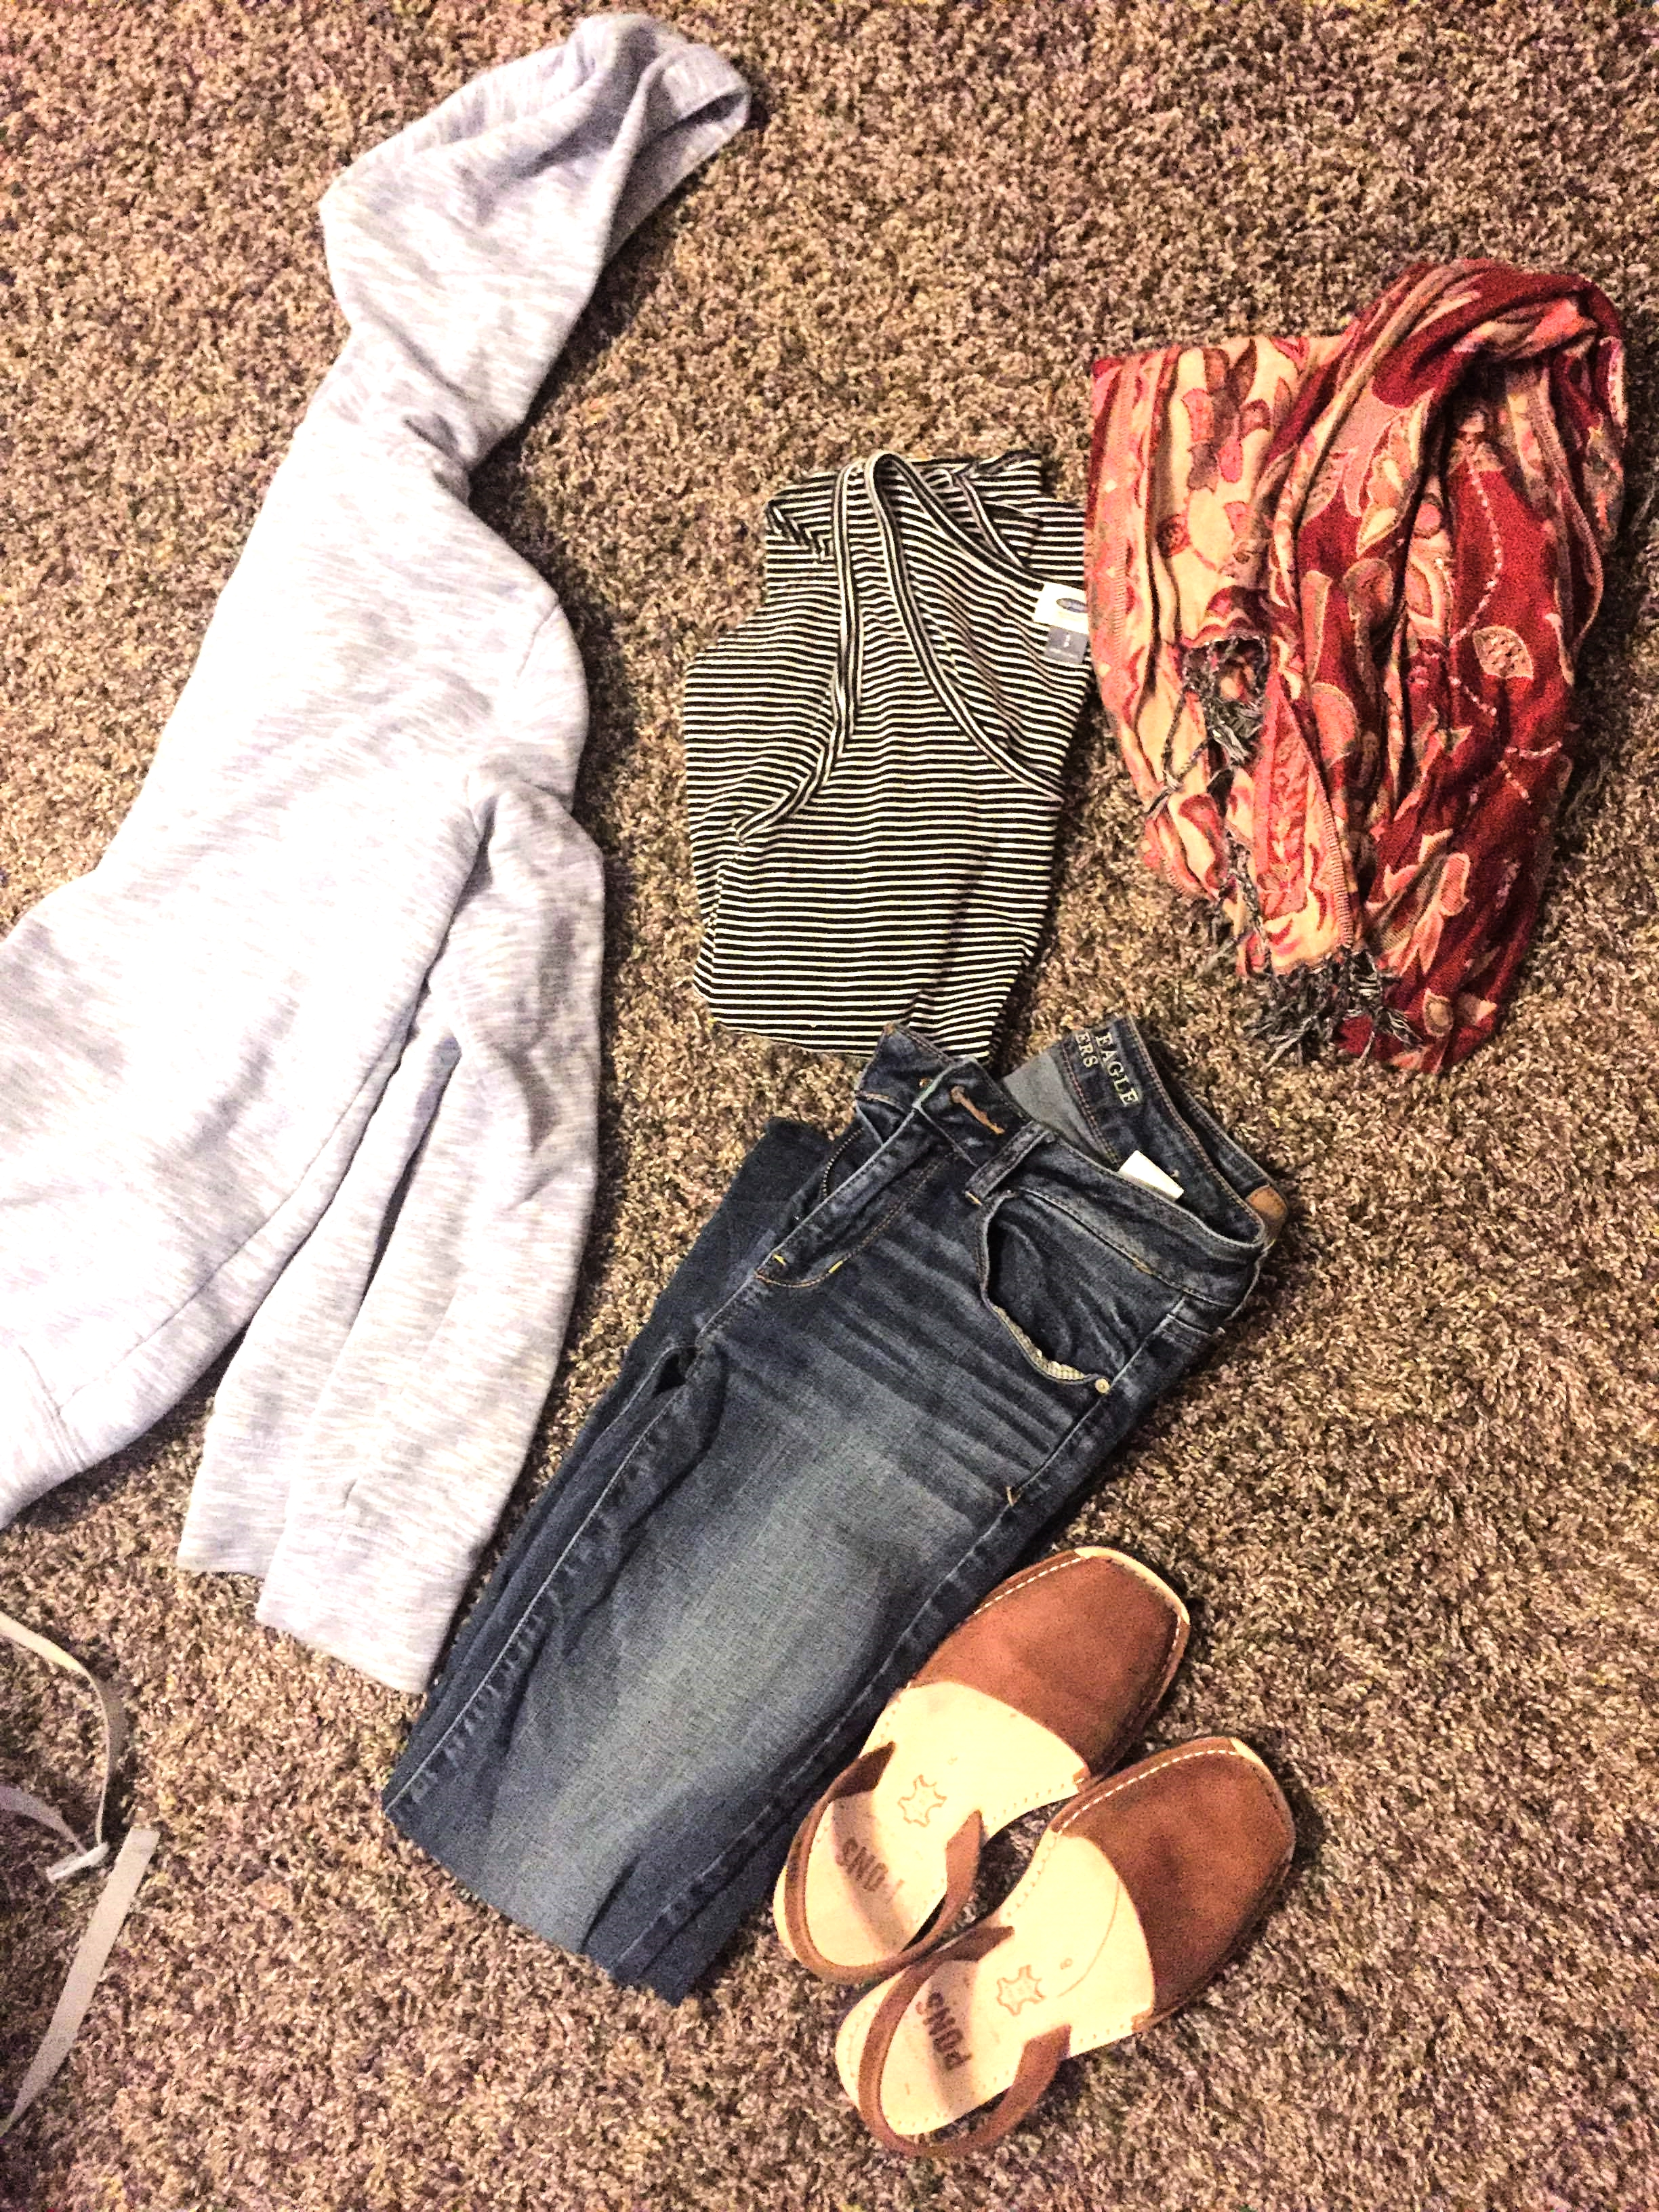 Airport Outfit | All Rights Reserved: Heather Woolery 2016